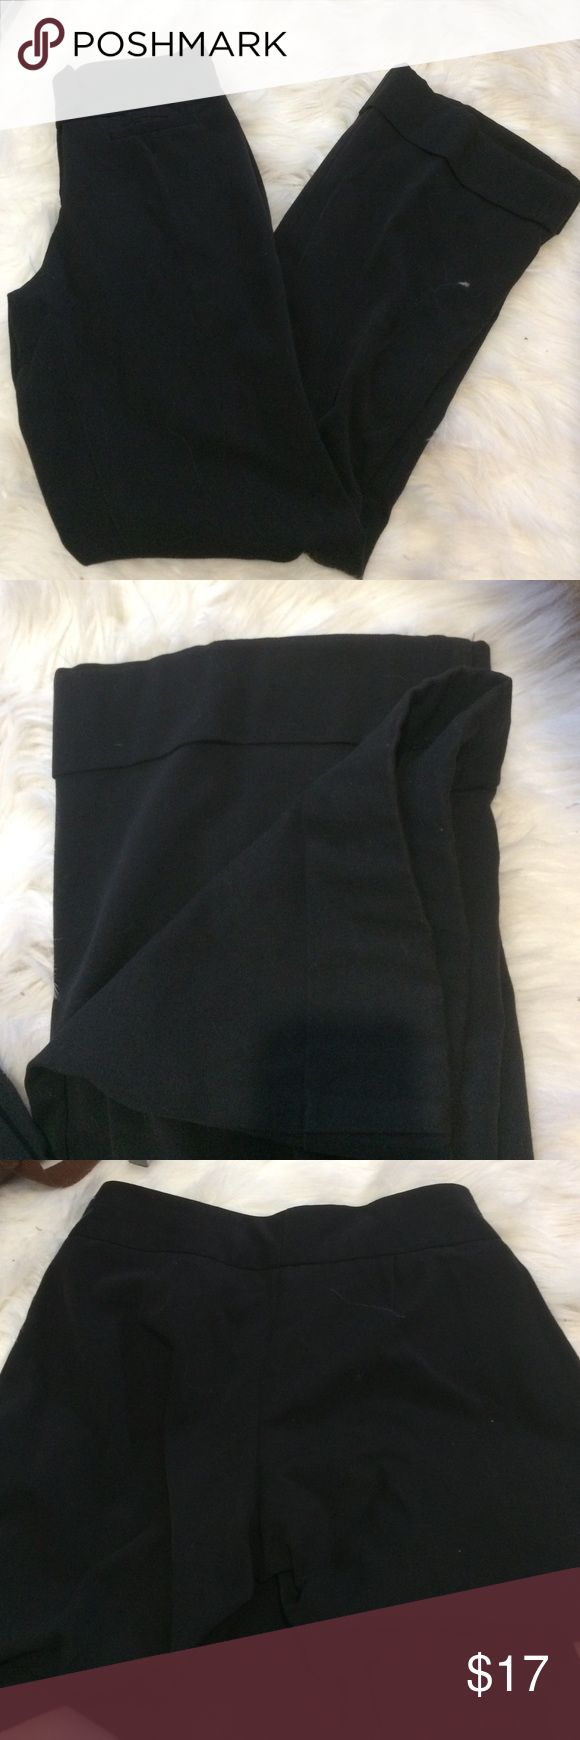 The limited perfect stretch dress pants Classic black dress pants from the Limited. Stretch fit with bottoms folded over. Size 2 regular length The Limited Pants Trousers